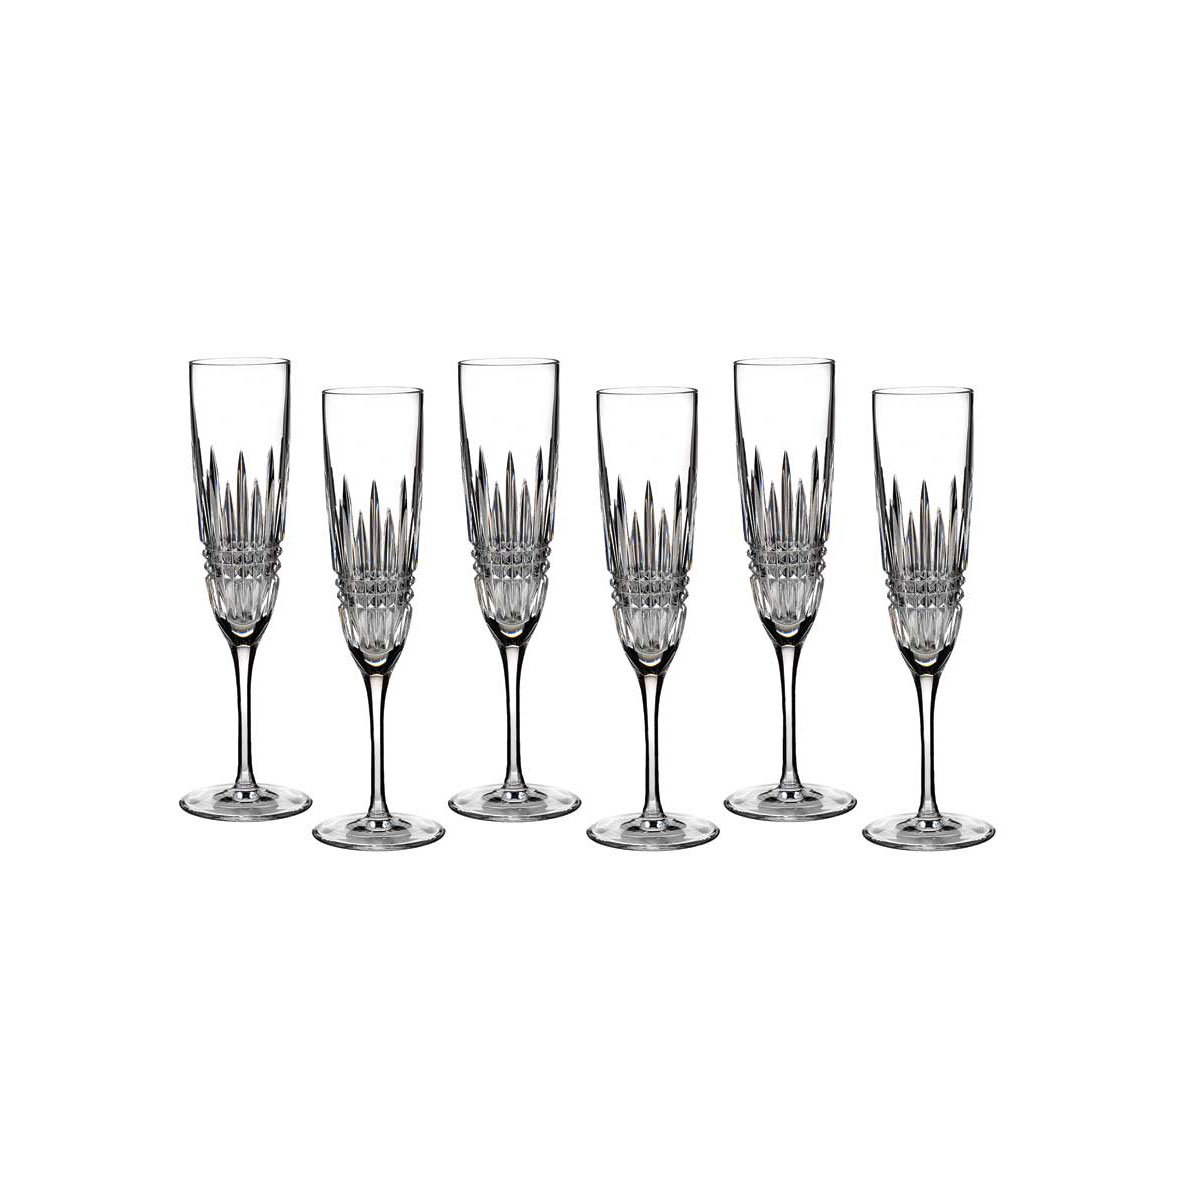 Waterford Crystal, Lismore Diamond Crystal Flute, Boxed Set 5+1 Free